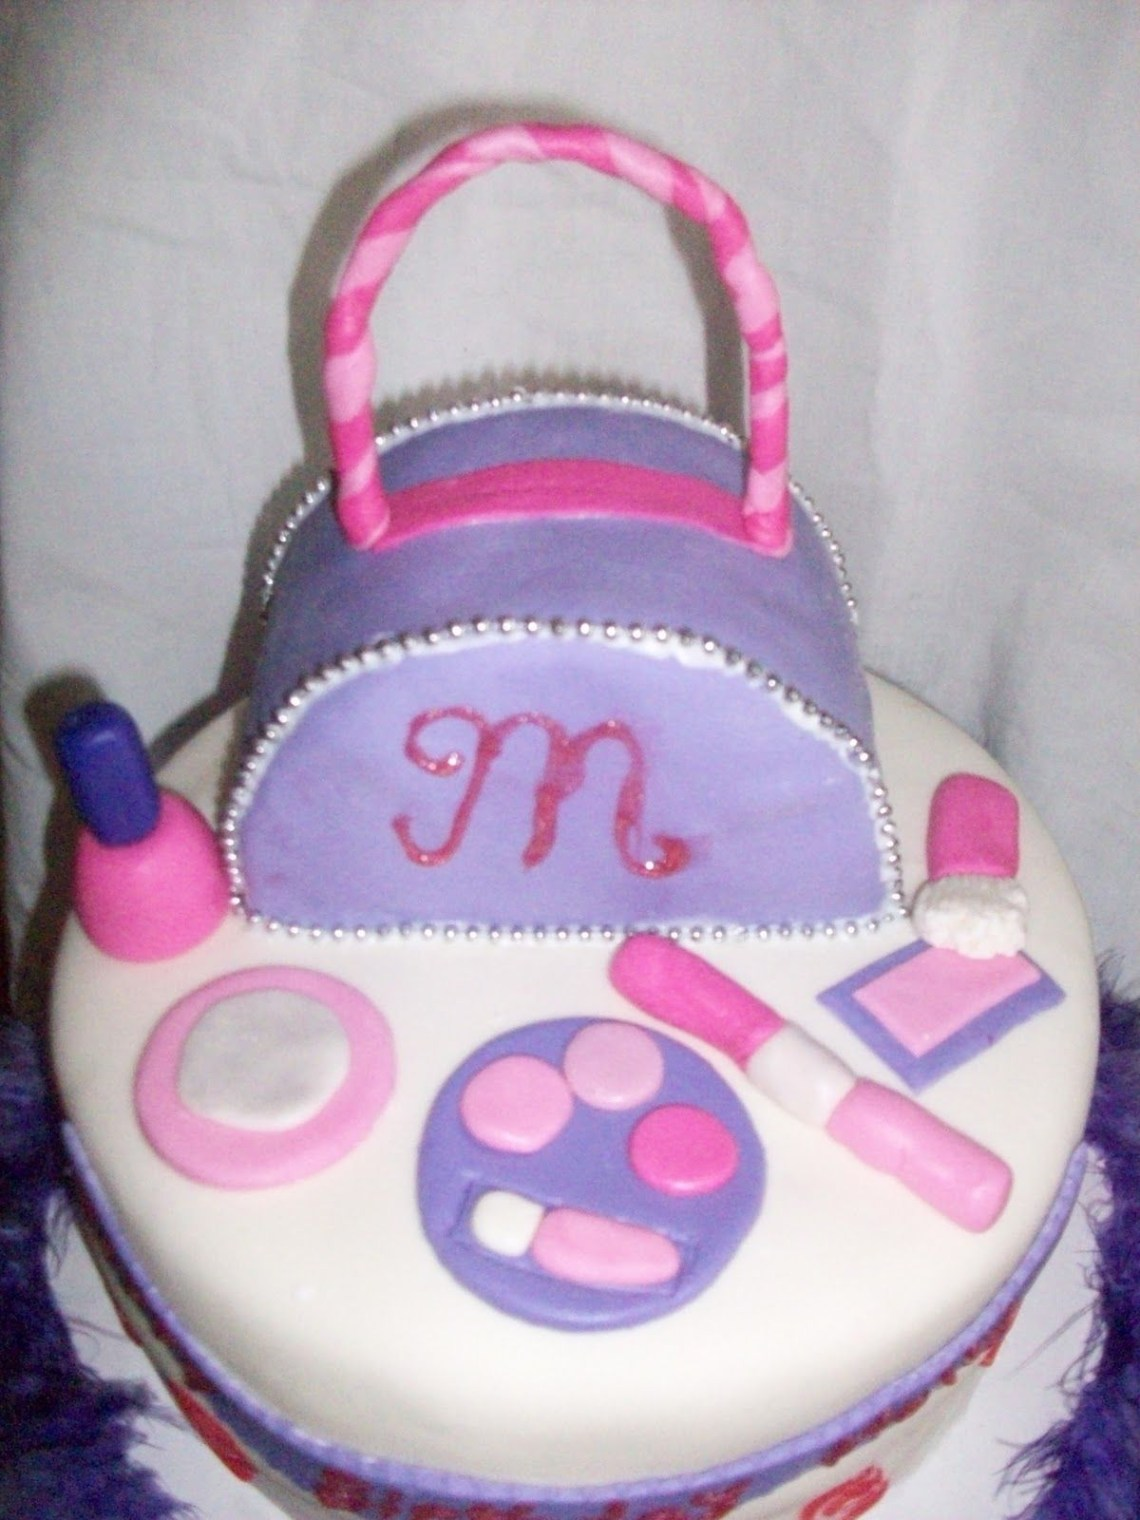 Groovy Cake For Small Girls The Cake Boutique Funny Birthday Cards Online Elaedamsfinfo